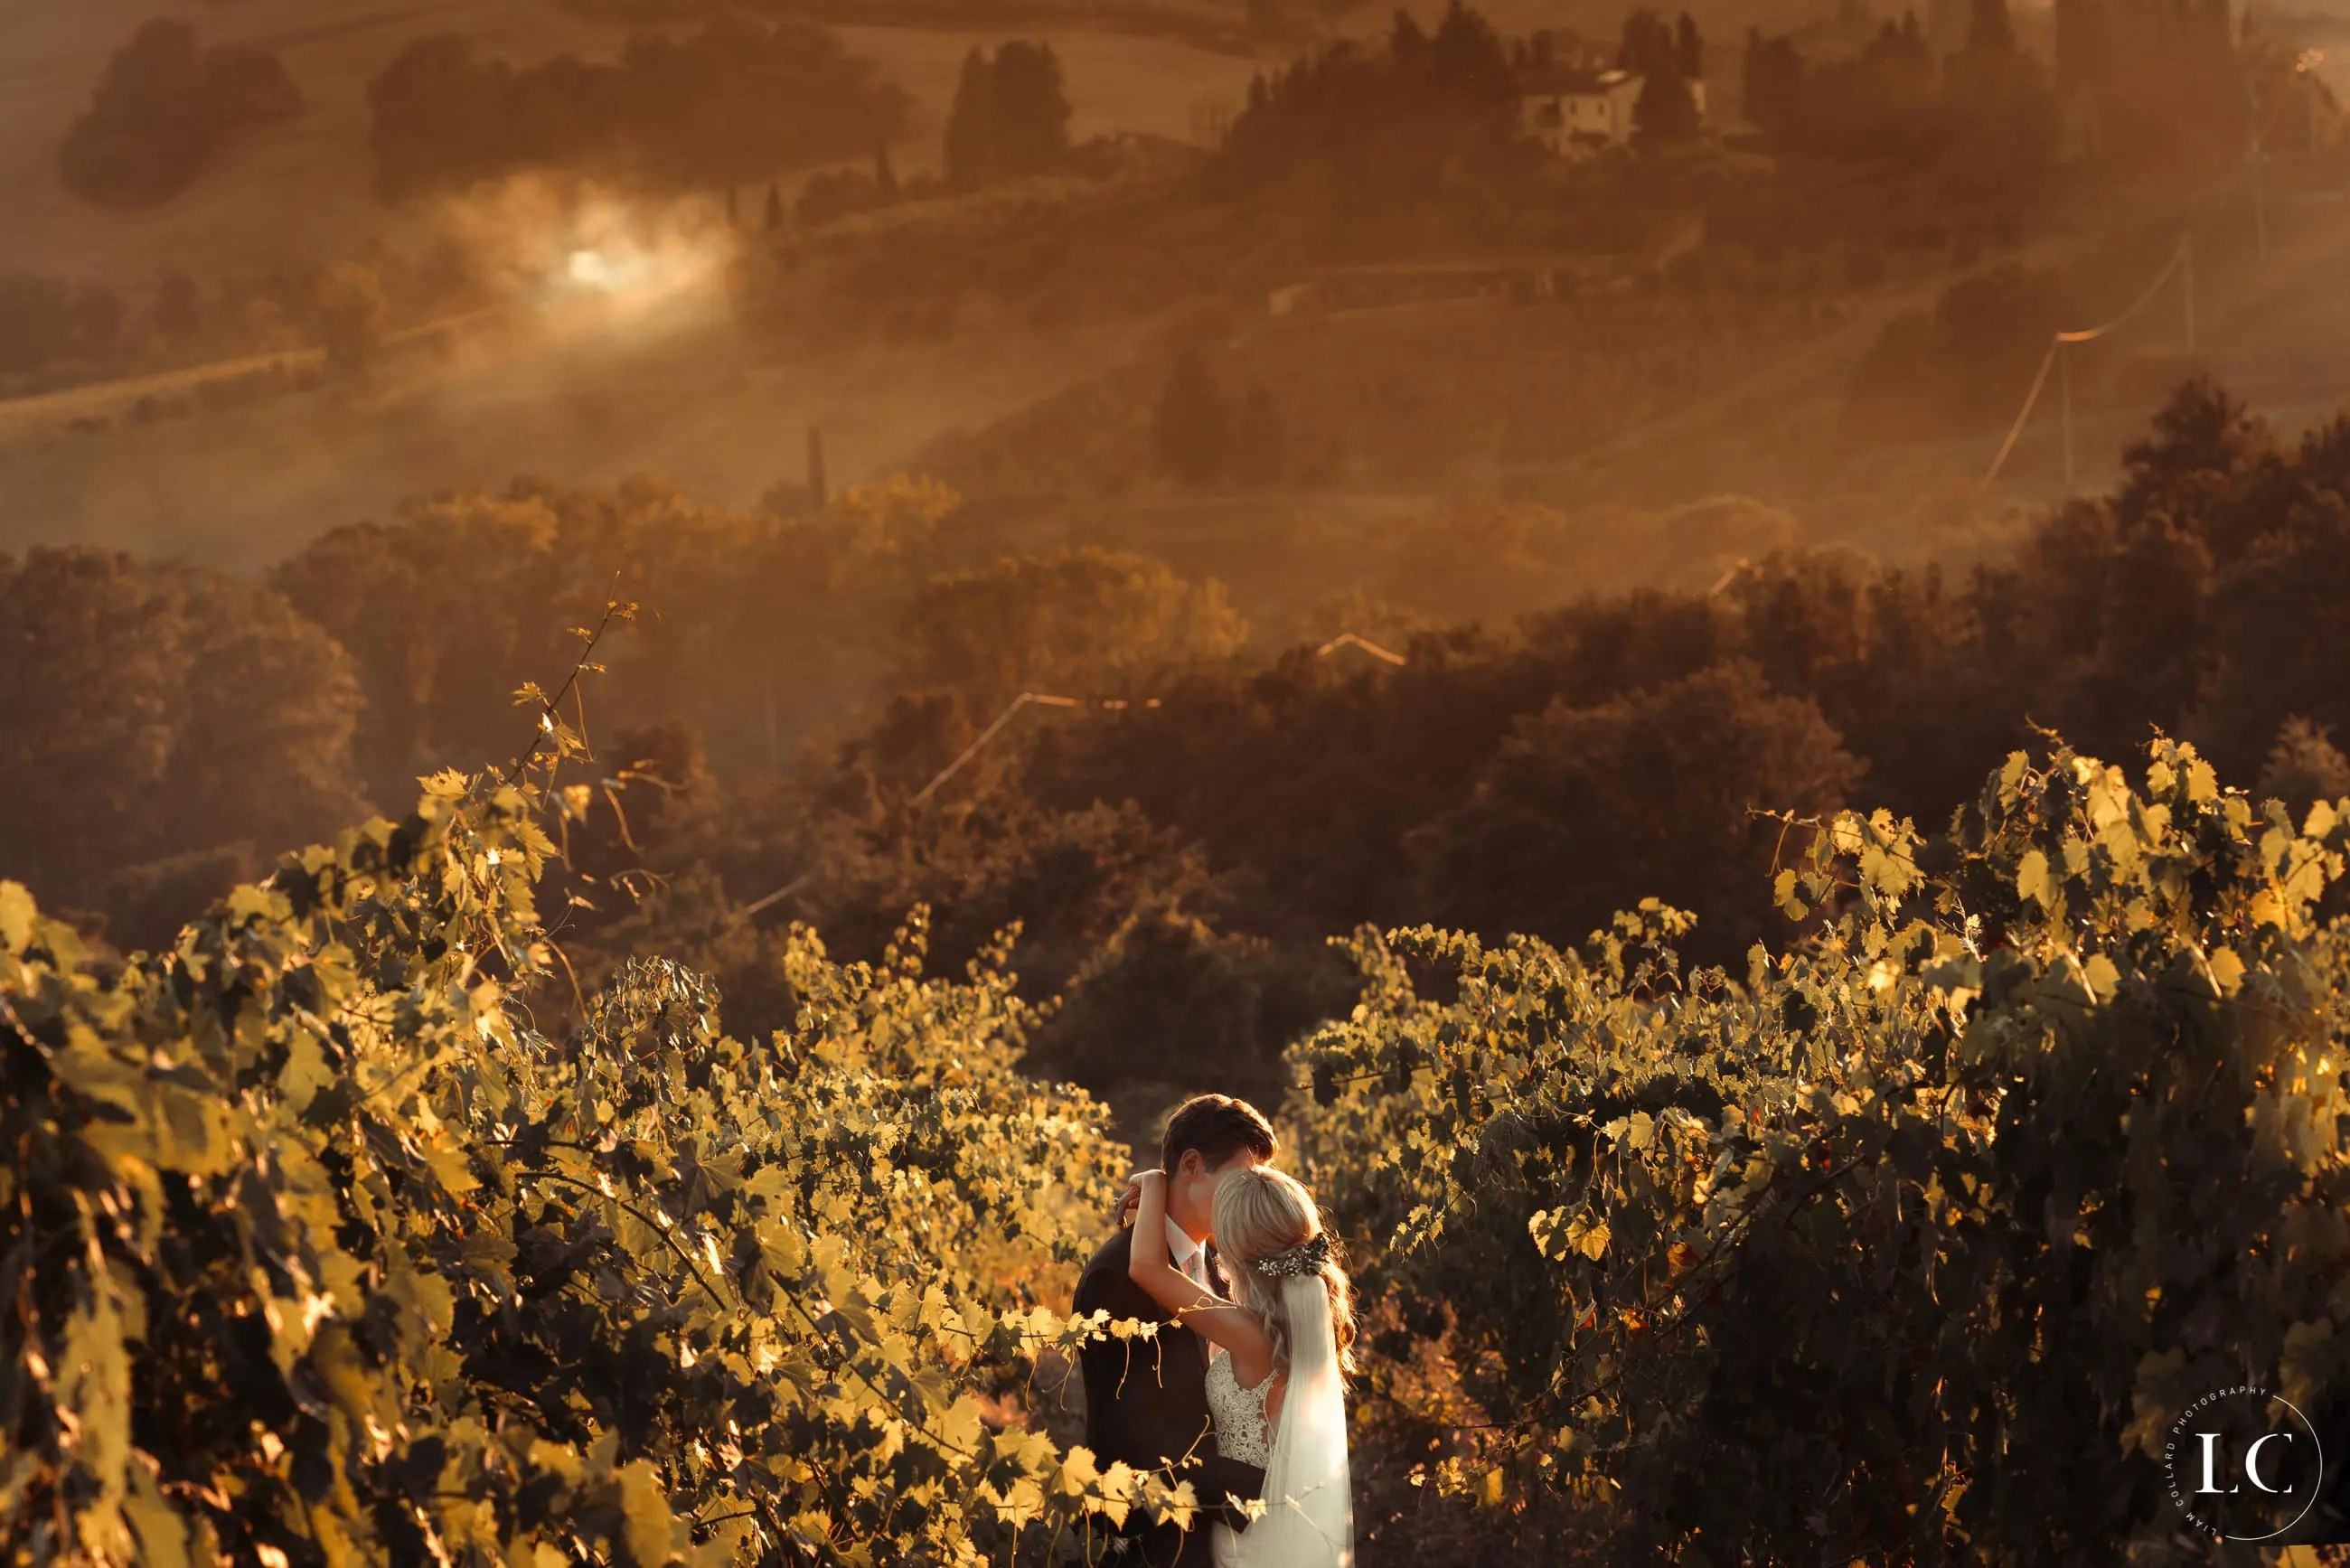 Bride and groom outside in nature